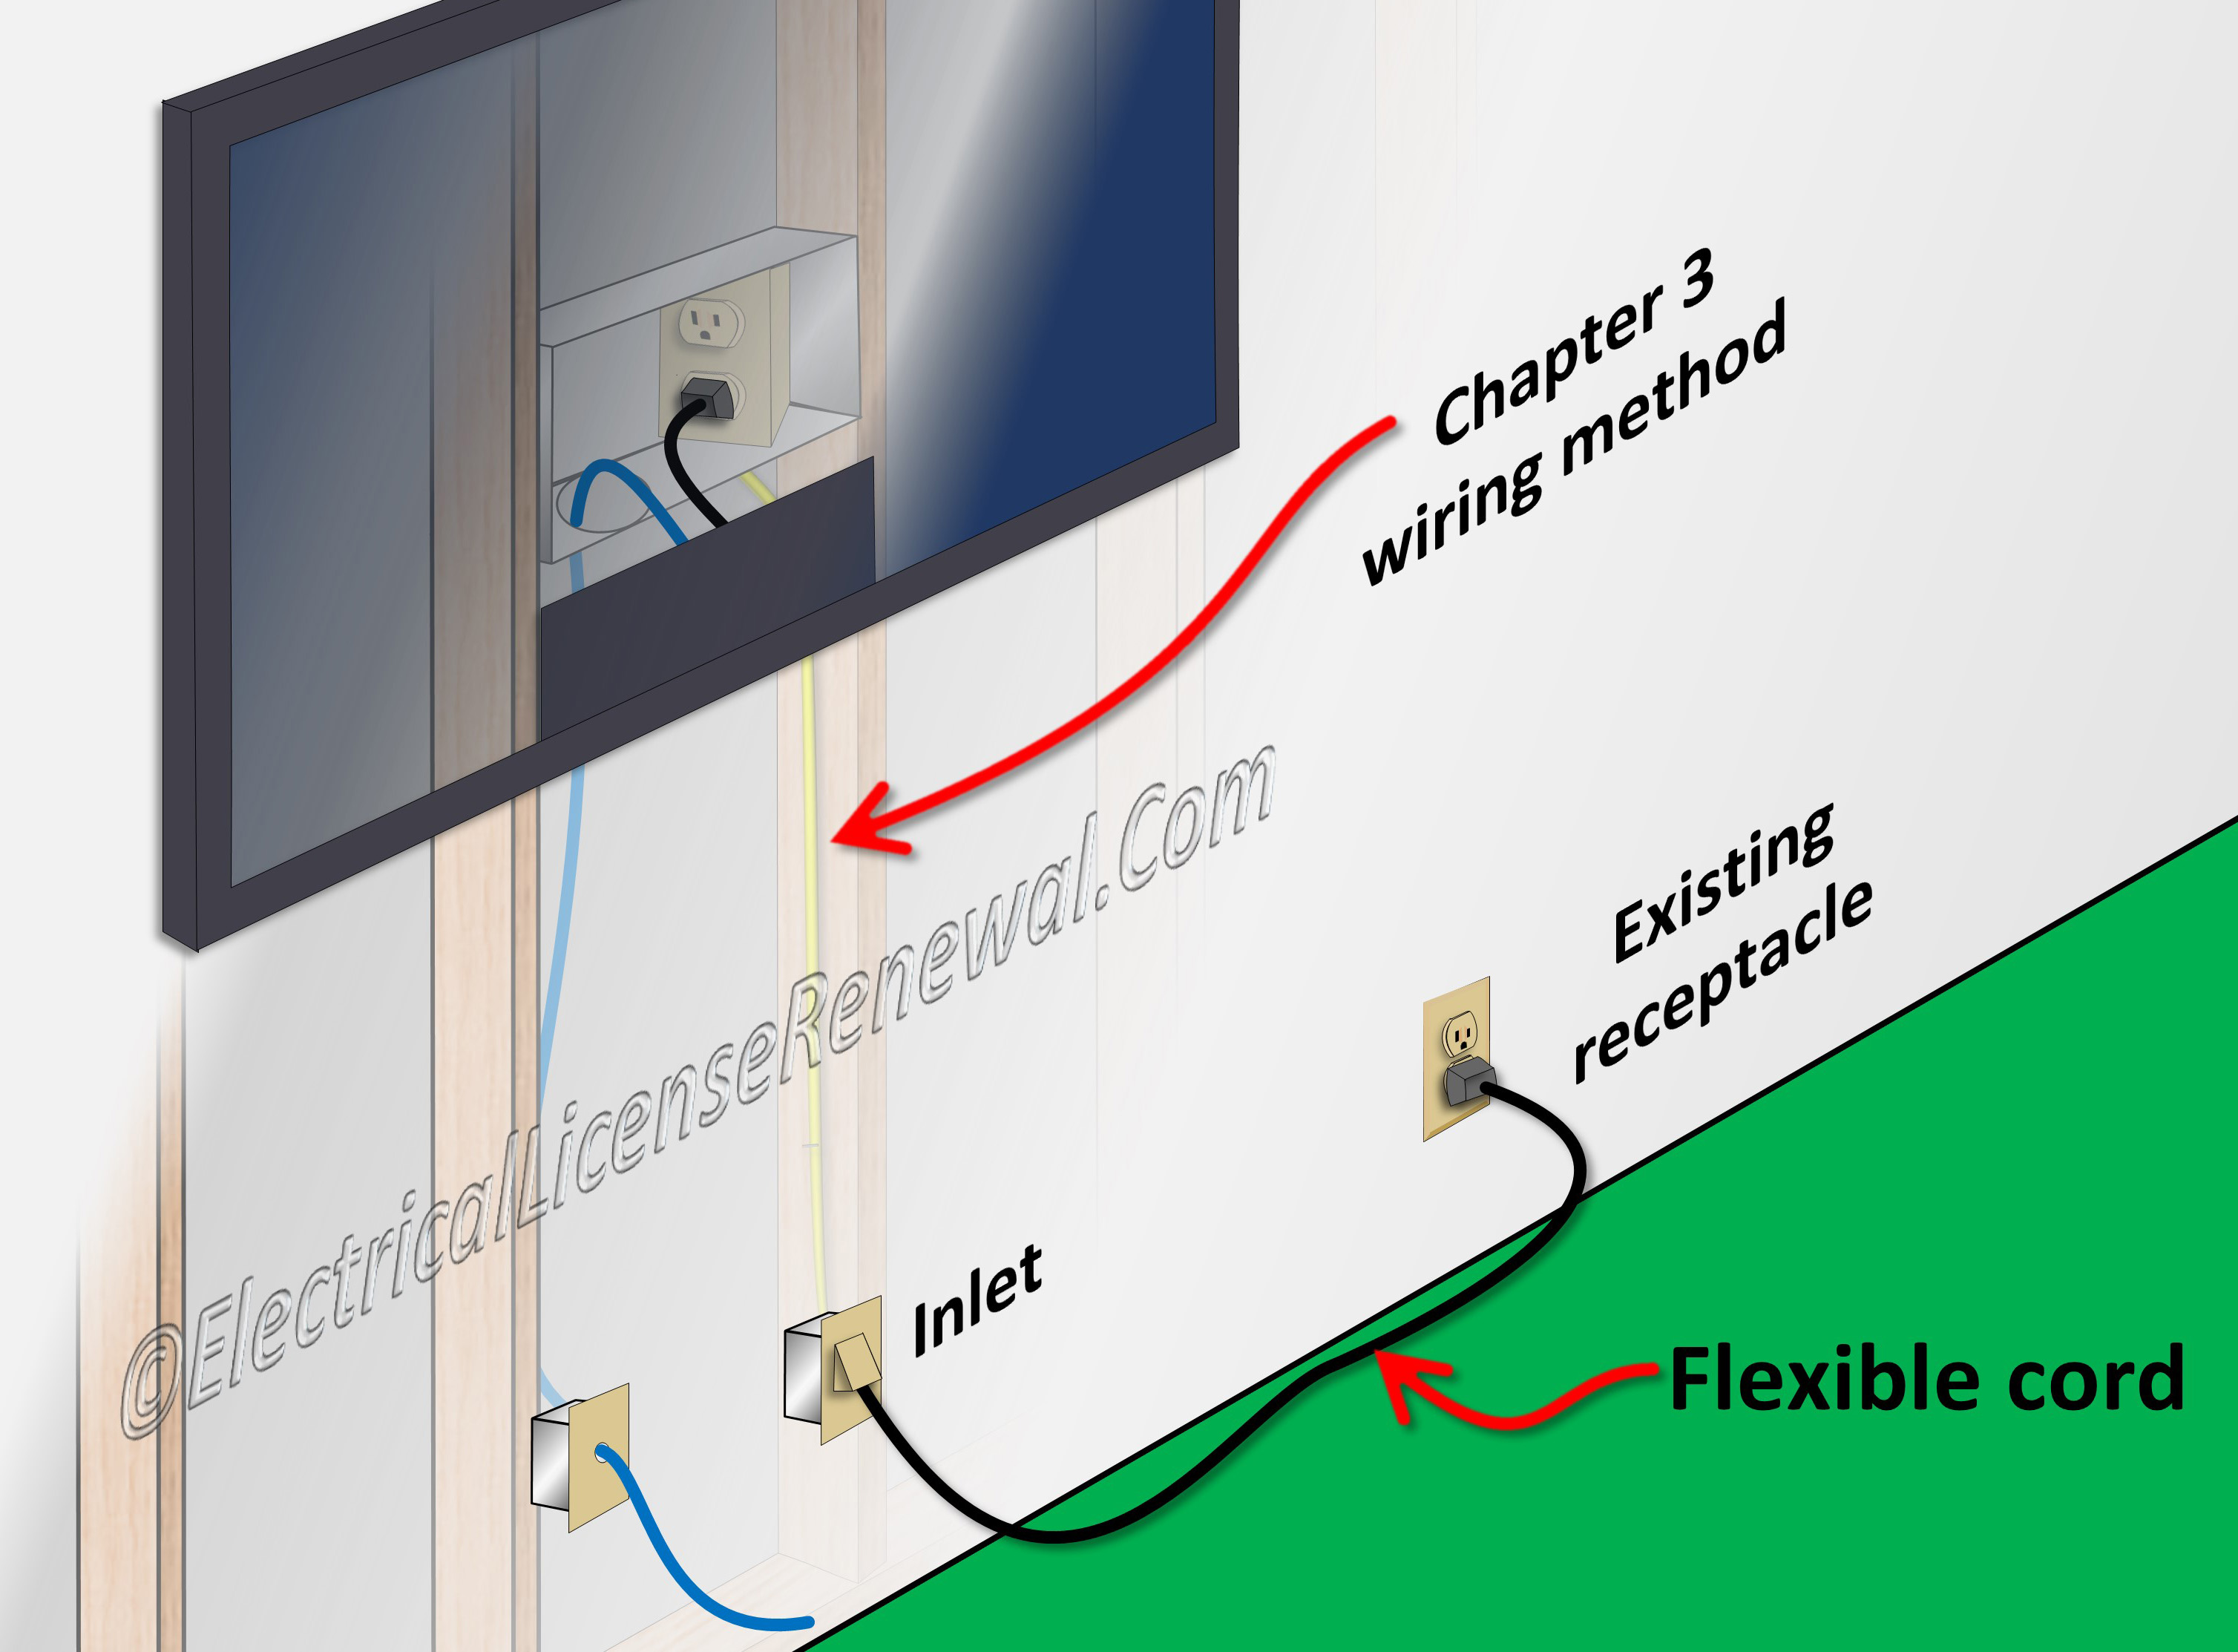 Extension Cord Wiring Diagram How To Wire Or Repair An Extension